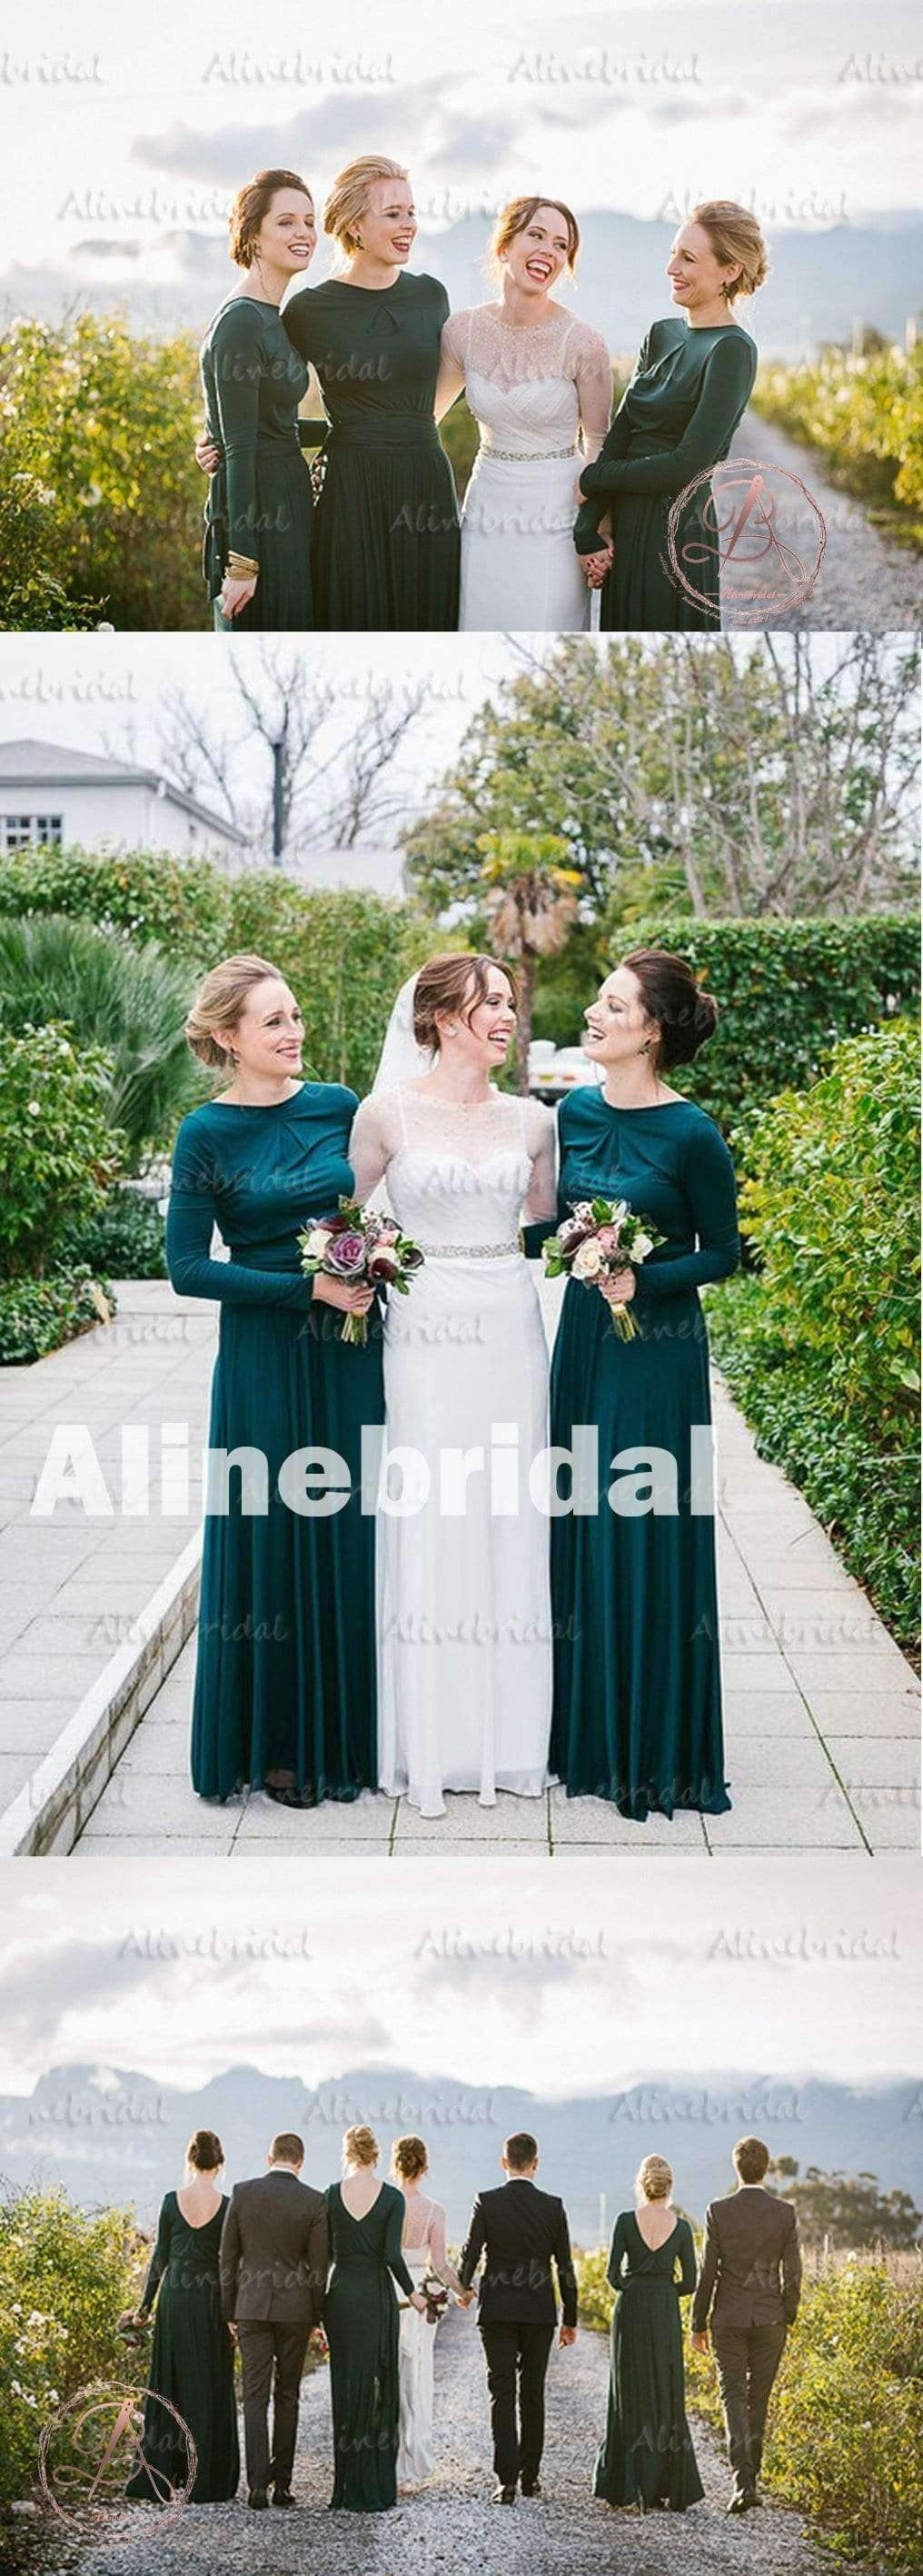 2019 Winter Hot Sale Green Jersey Long Sleeve Round Neck Modest Long Bridesmaid Dress. AB1181